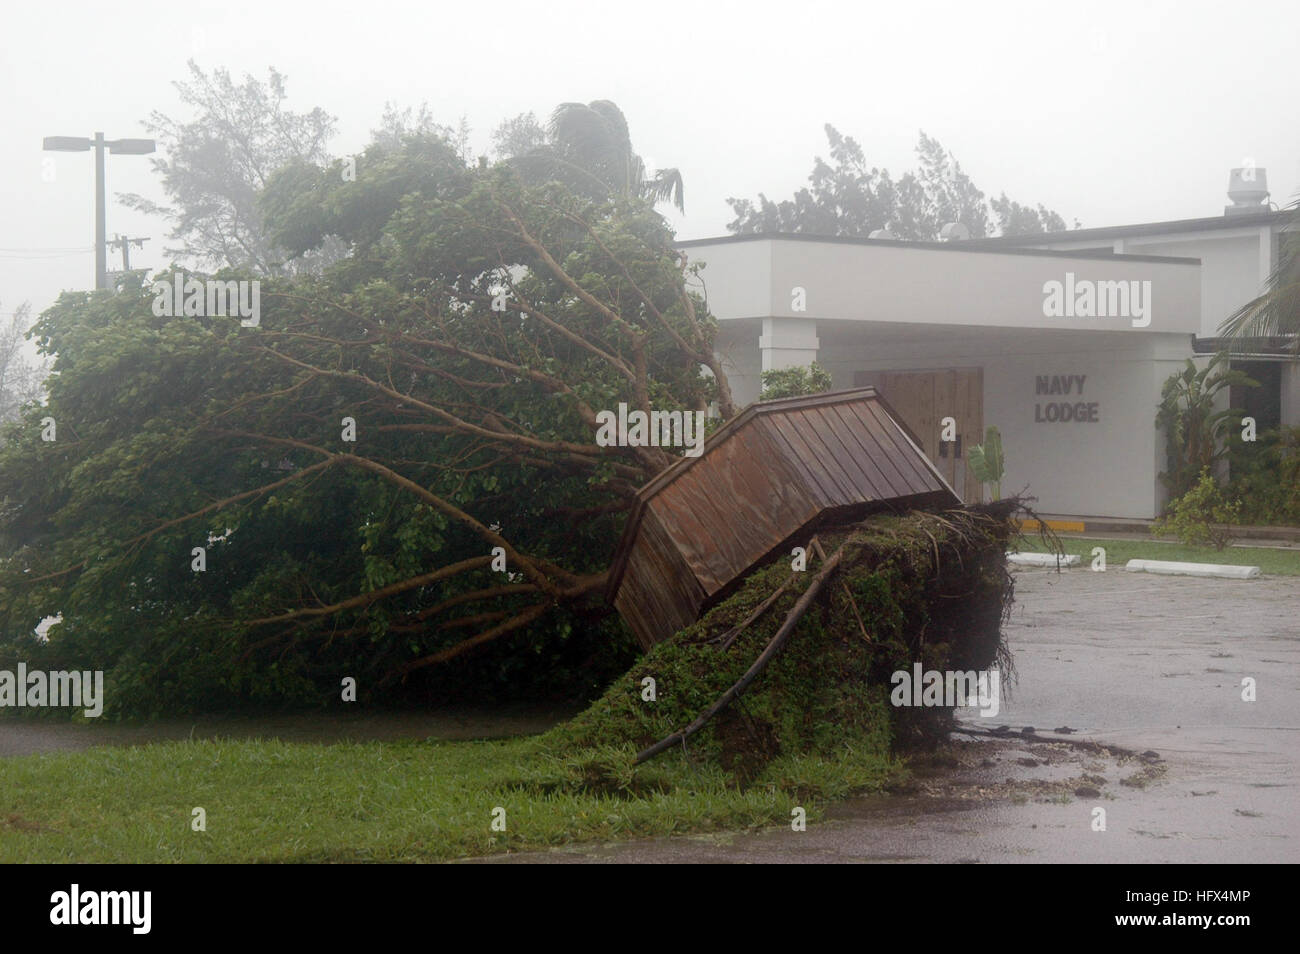 050709-N-0000B-008 Key West, Fla. (July 9, 2005) - A tree is uprooted outside the Naval Air Station (NAS) Key West - Stock Image